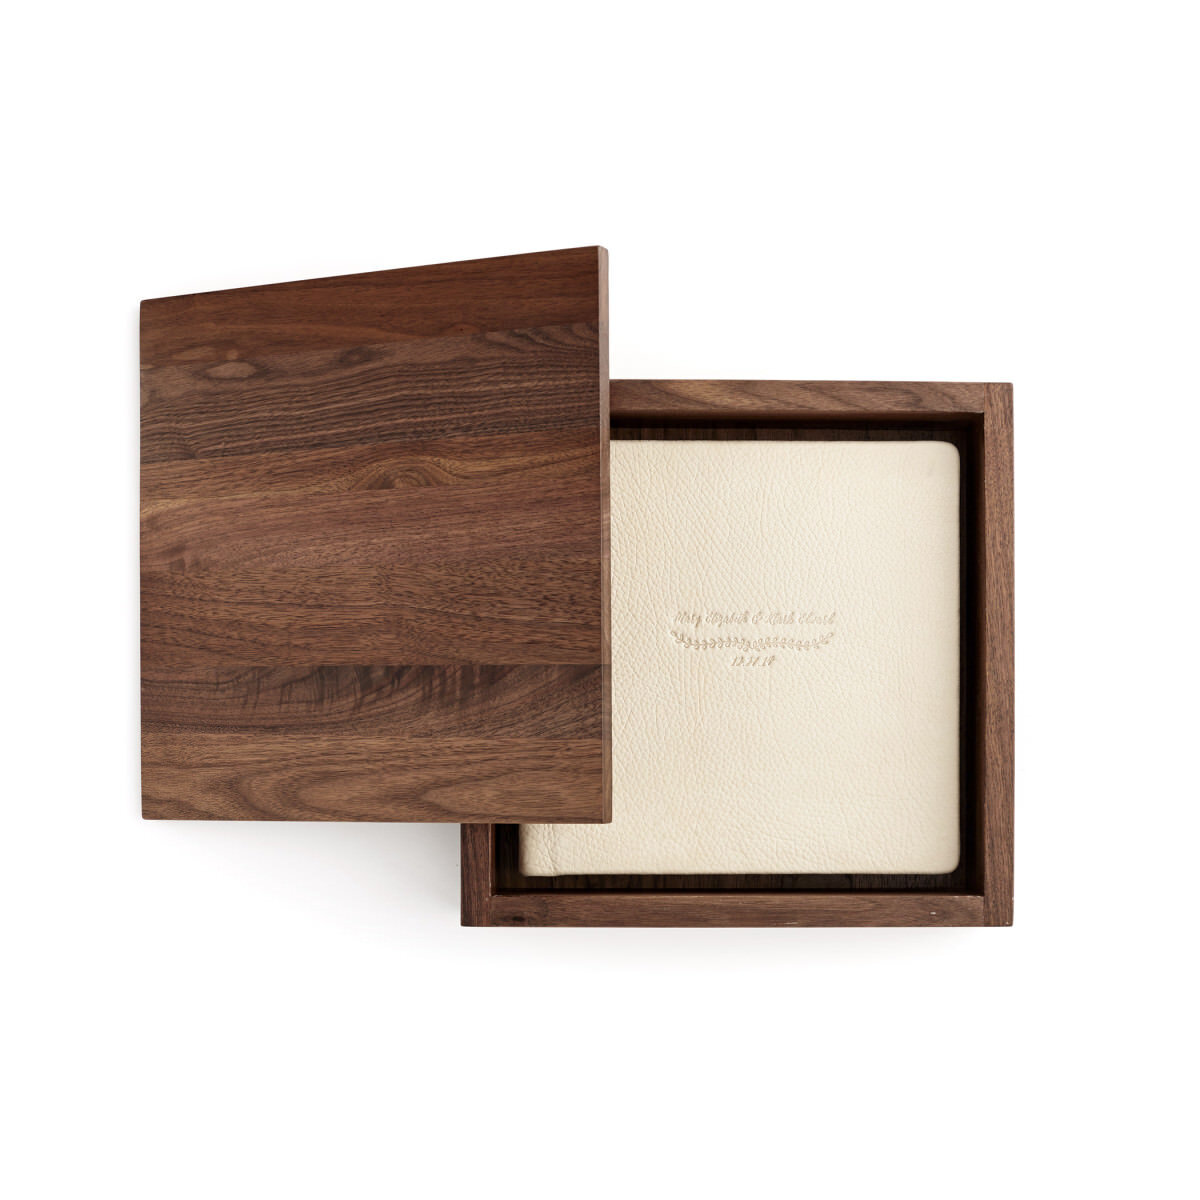 Wooden Album Boxes - These luxurious wooden presentation boxes are the perfect heirloom for storing, protecting, and showcasing albums. They are handcrafted from bamboo or walnut with various stain choices and a smooth, clean finish.• Choose from three walnut stains• Bamboo is available in natural and carbonized finishes• Lid engraving is available.